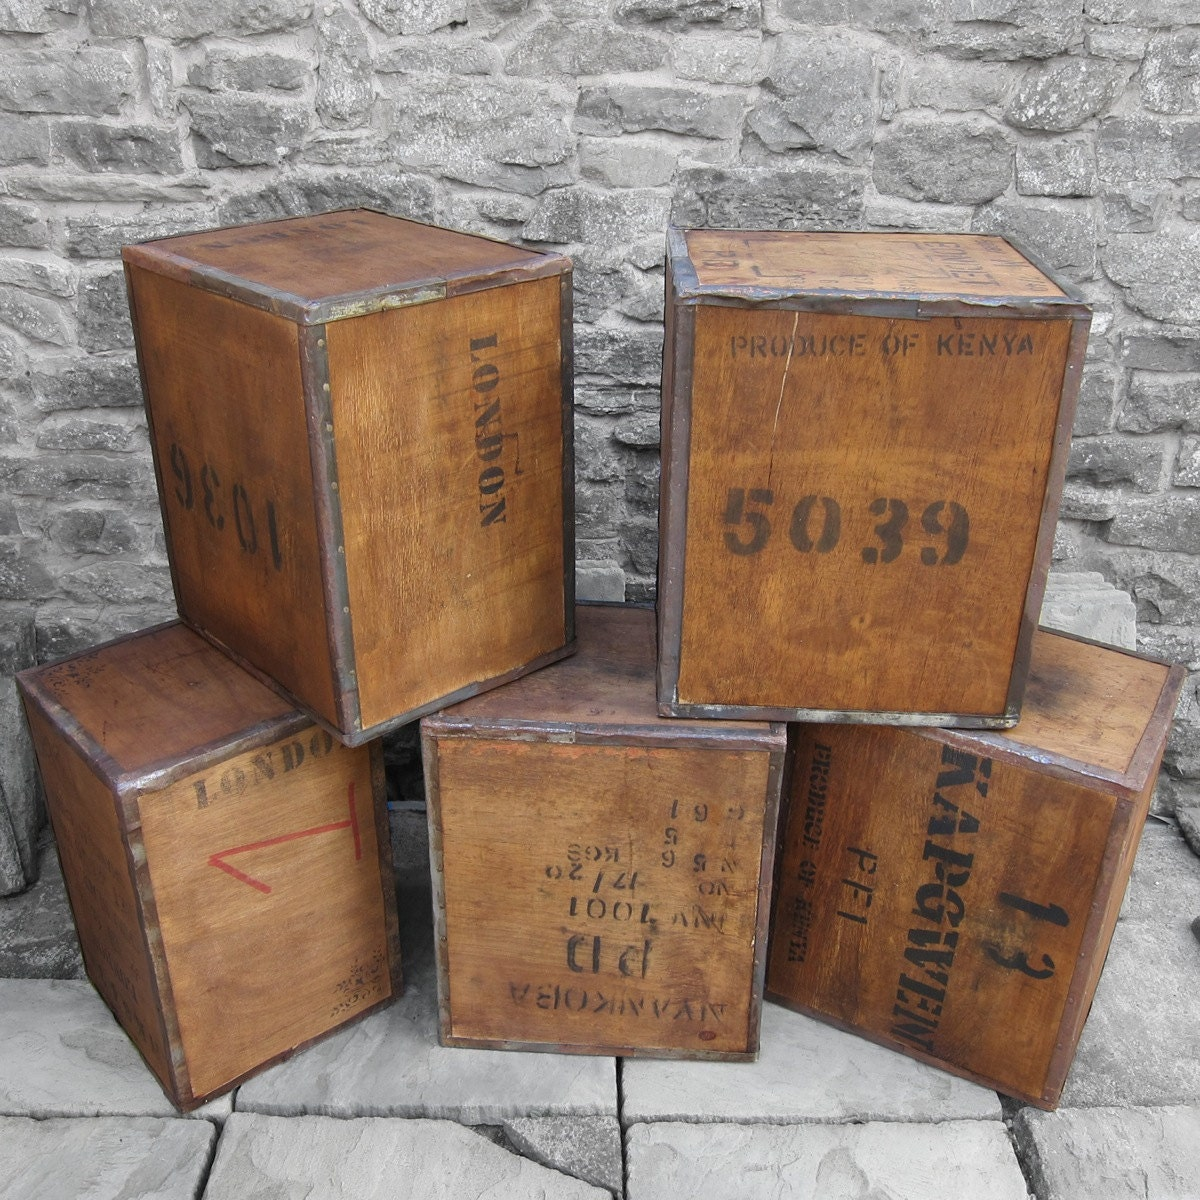 Vintage Tea Chest Trunk Box Crate Storage Side Table BedSide  London Antique Display Shop Window